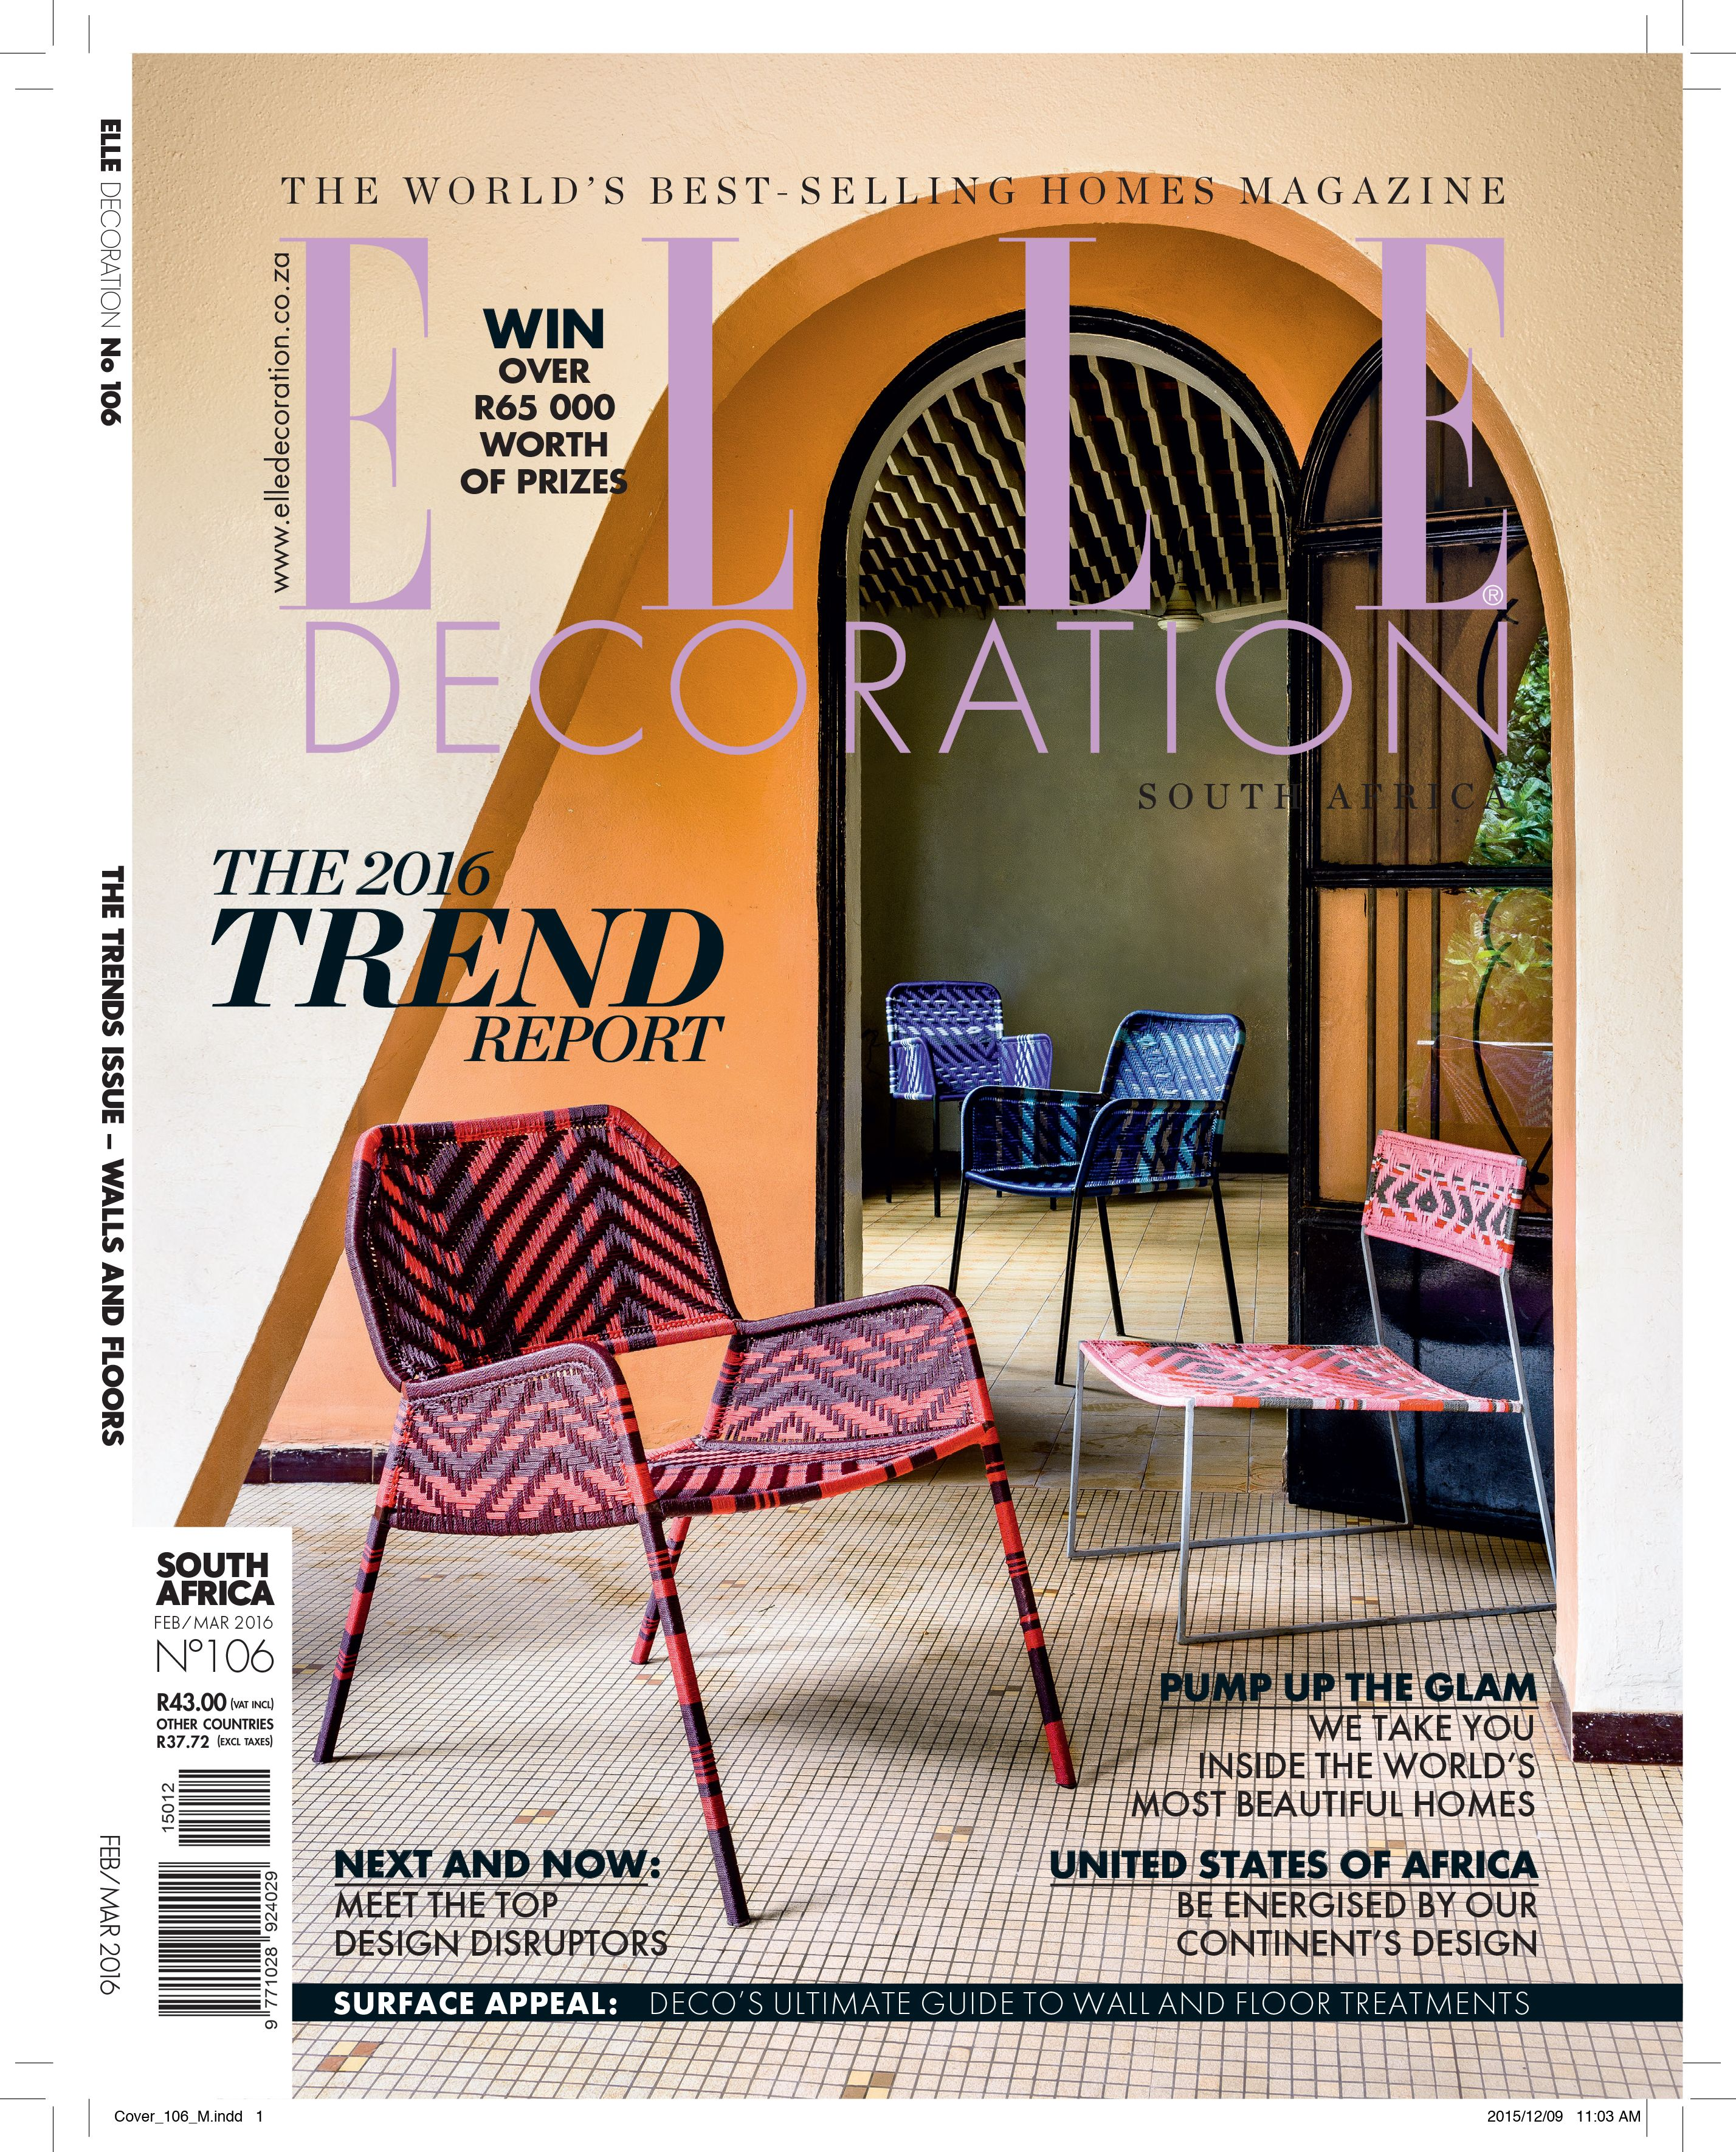 Elle Decoration South Africa Elle Decoration South Africa Issue 106 Editor Bielle